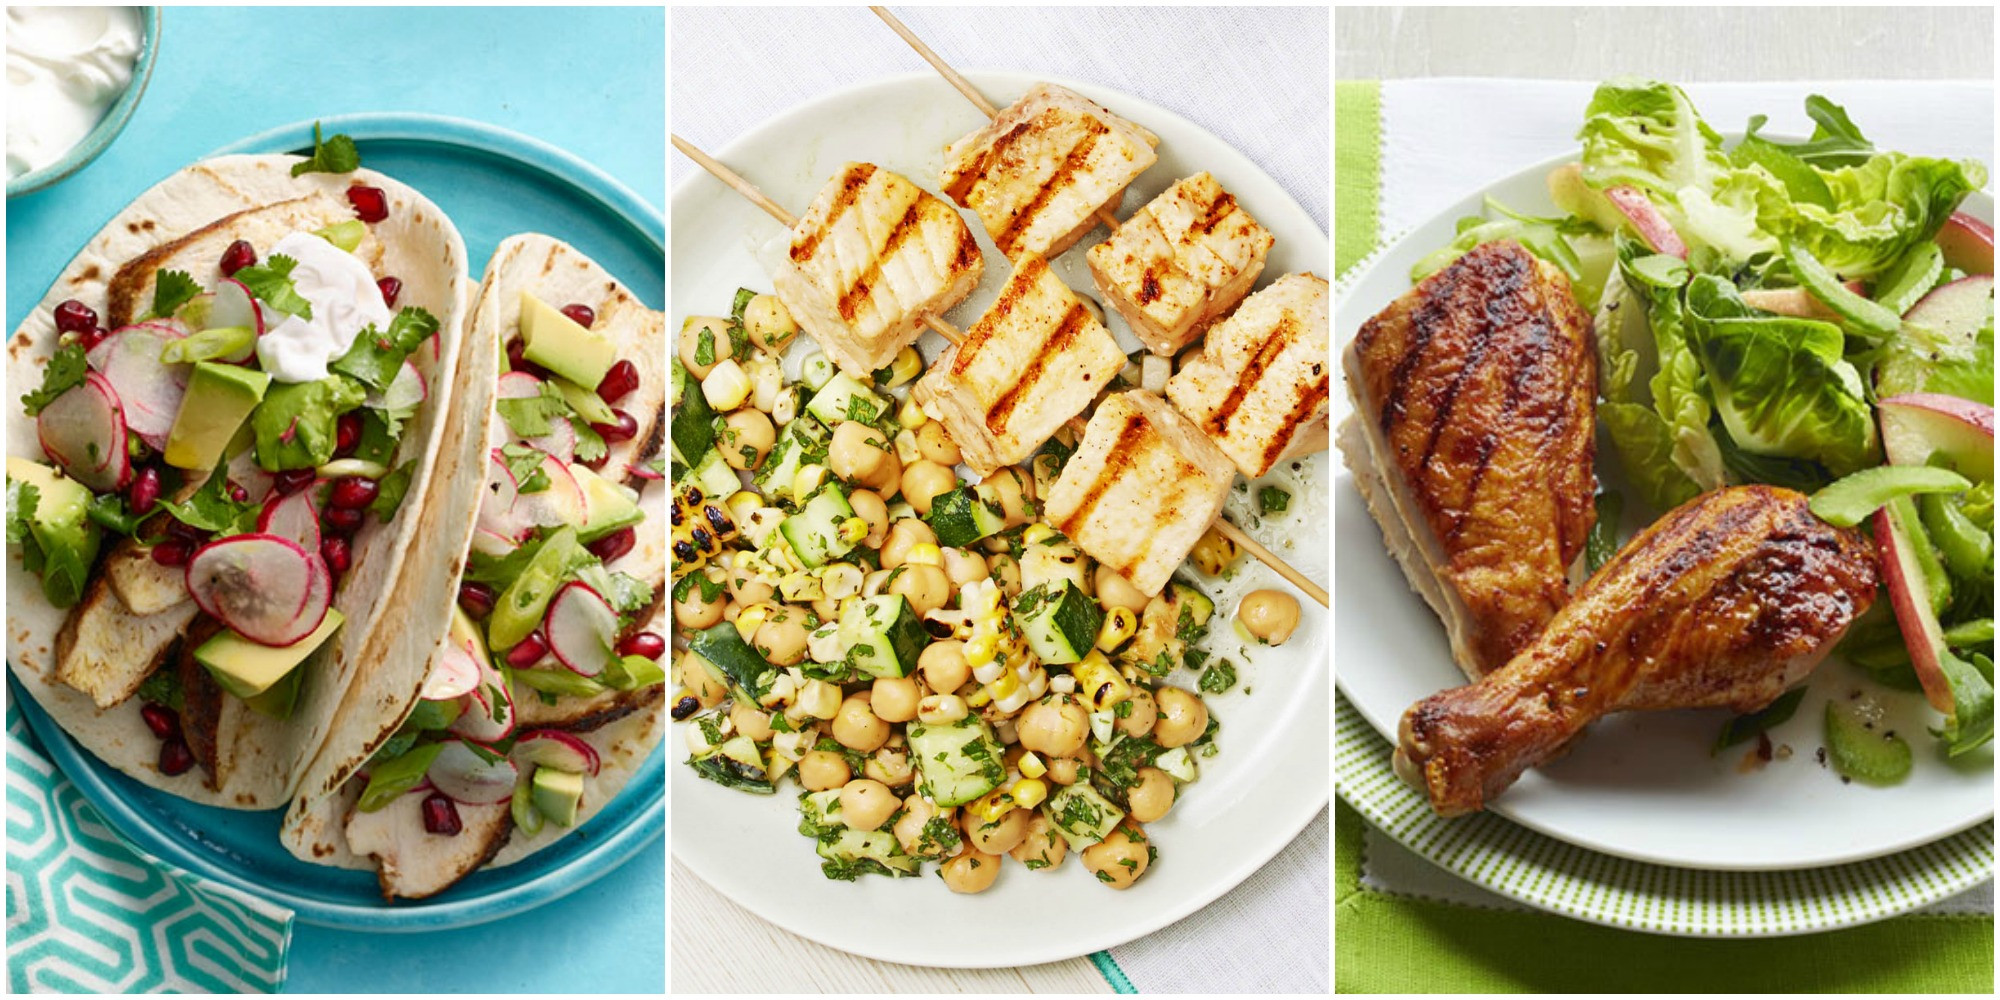 Good Summer Dinners Recipes the Best Ideas for 60 Best Summer Dinner Recipes Quick and Easy Summer Meal